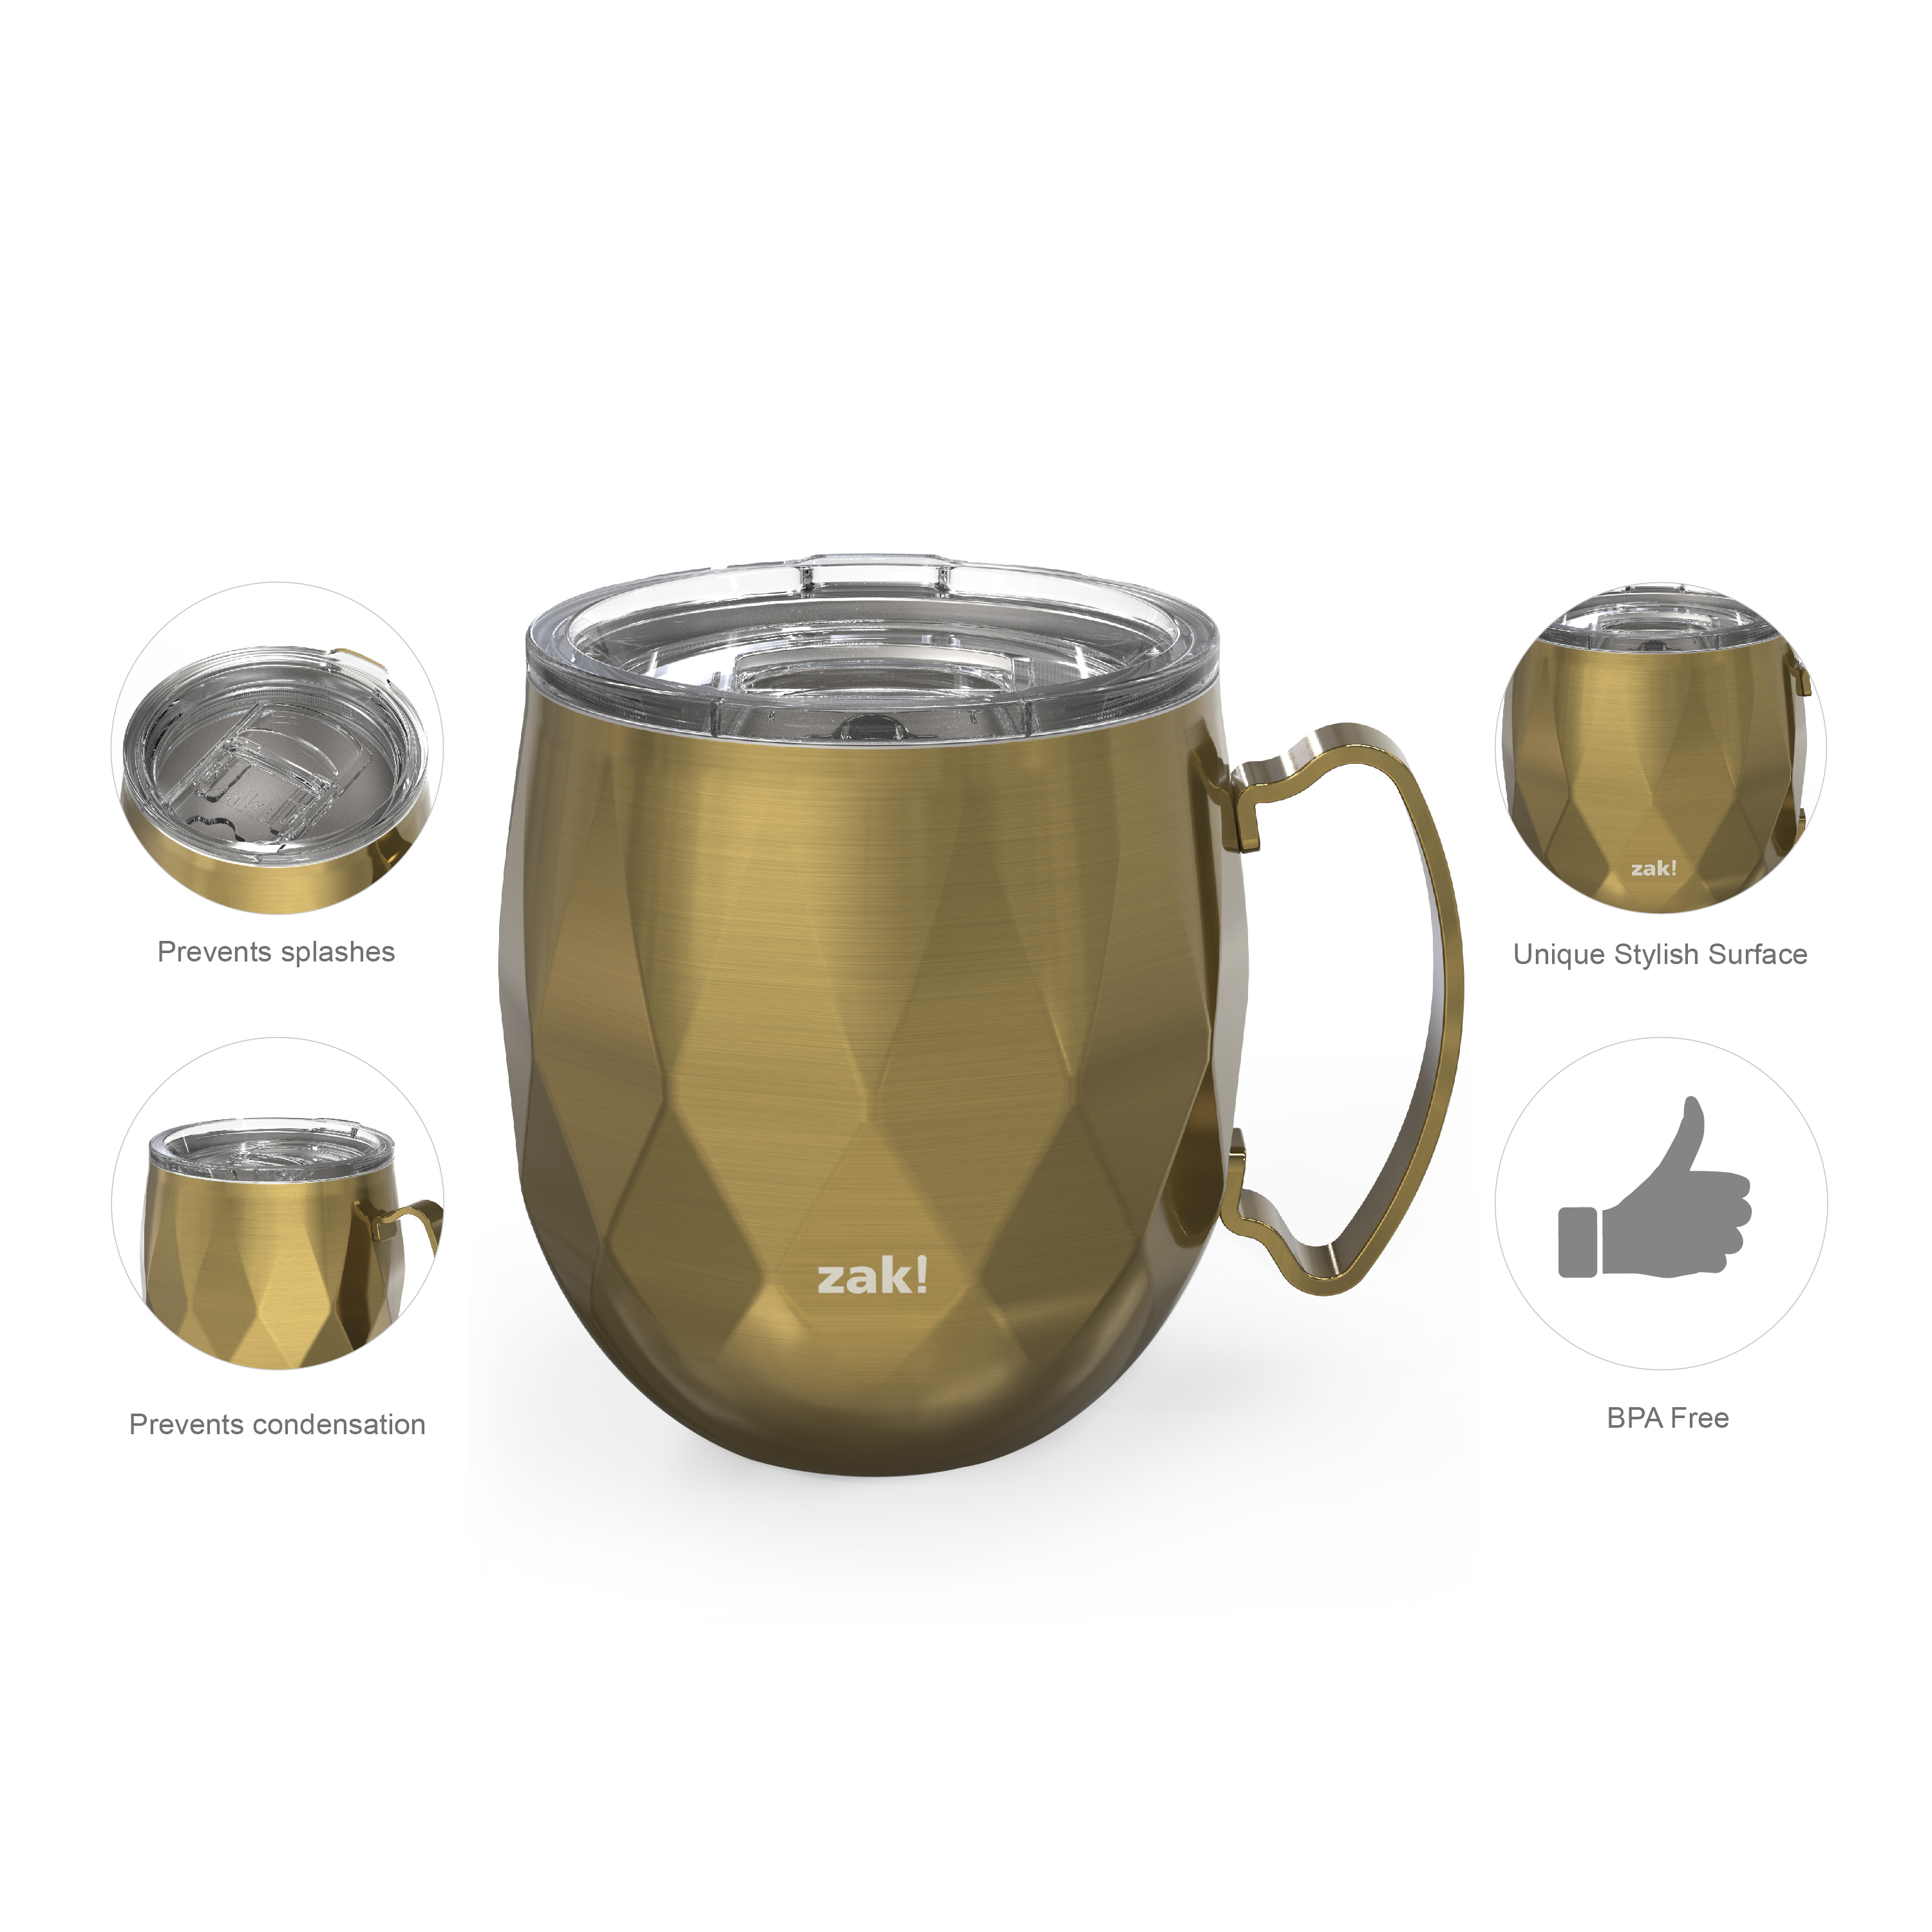 Fractal 19 ounce Vacuum Insulated Stainless Steel Mule Mug, Light Gold slideshow image 9